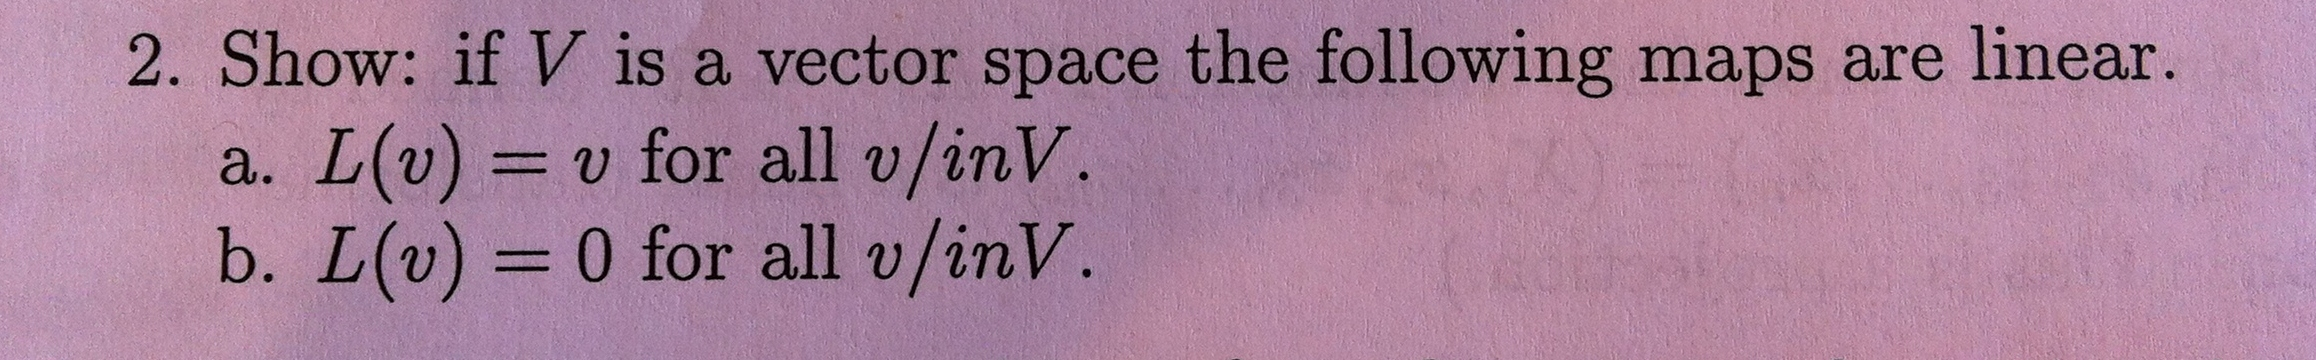 Show: if V is a vector space the following maps ar